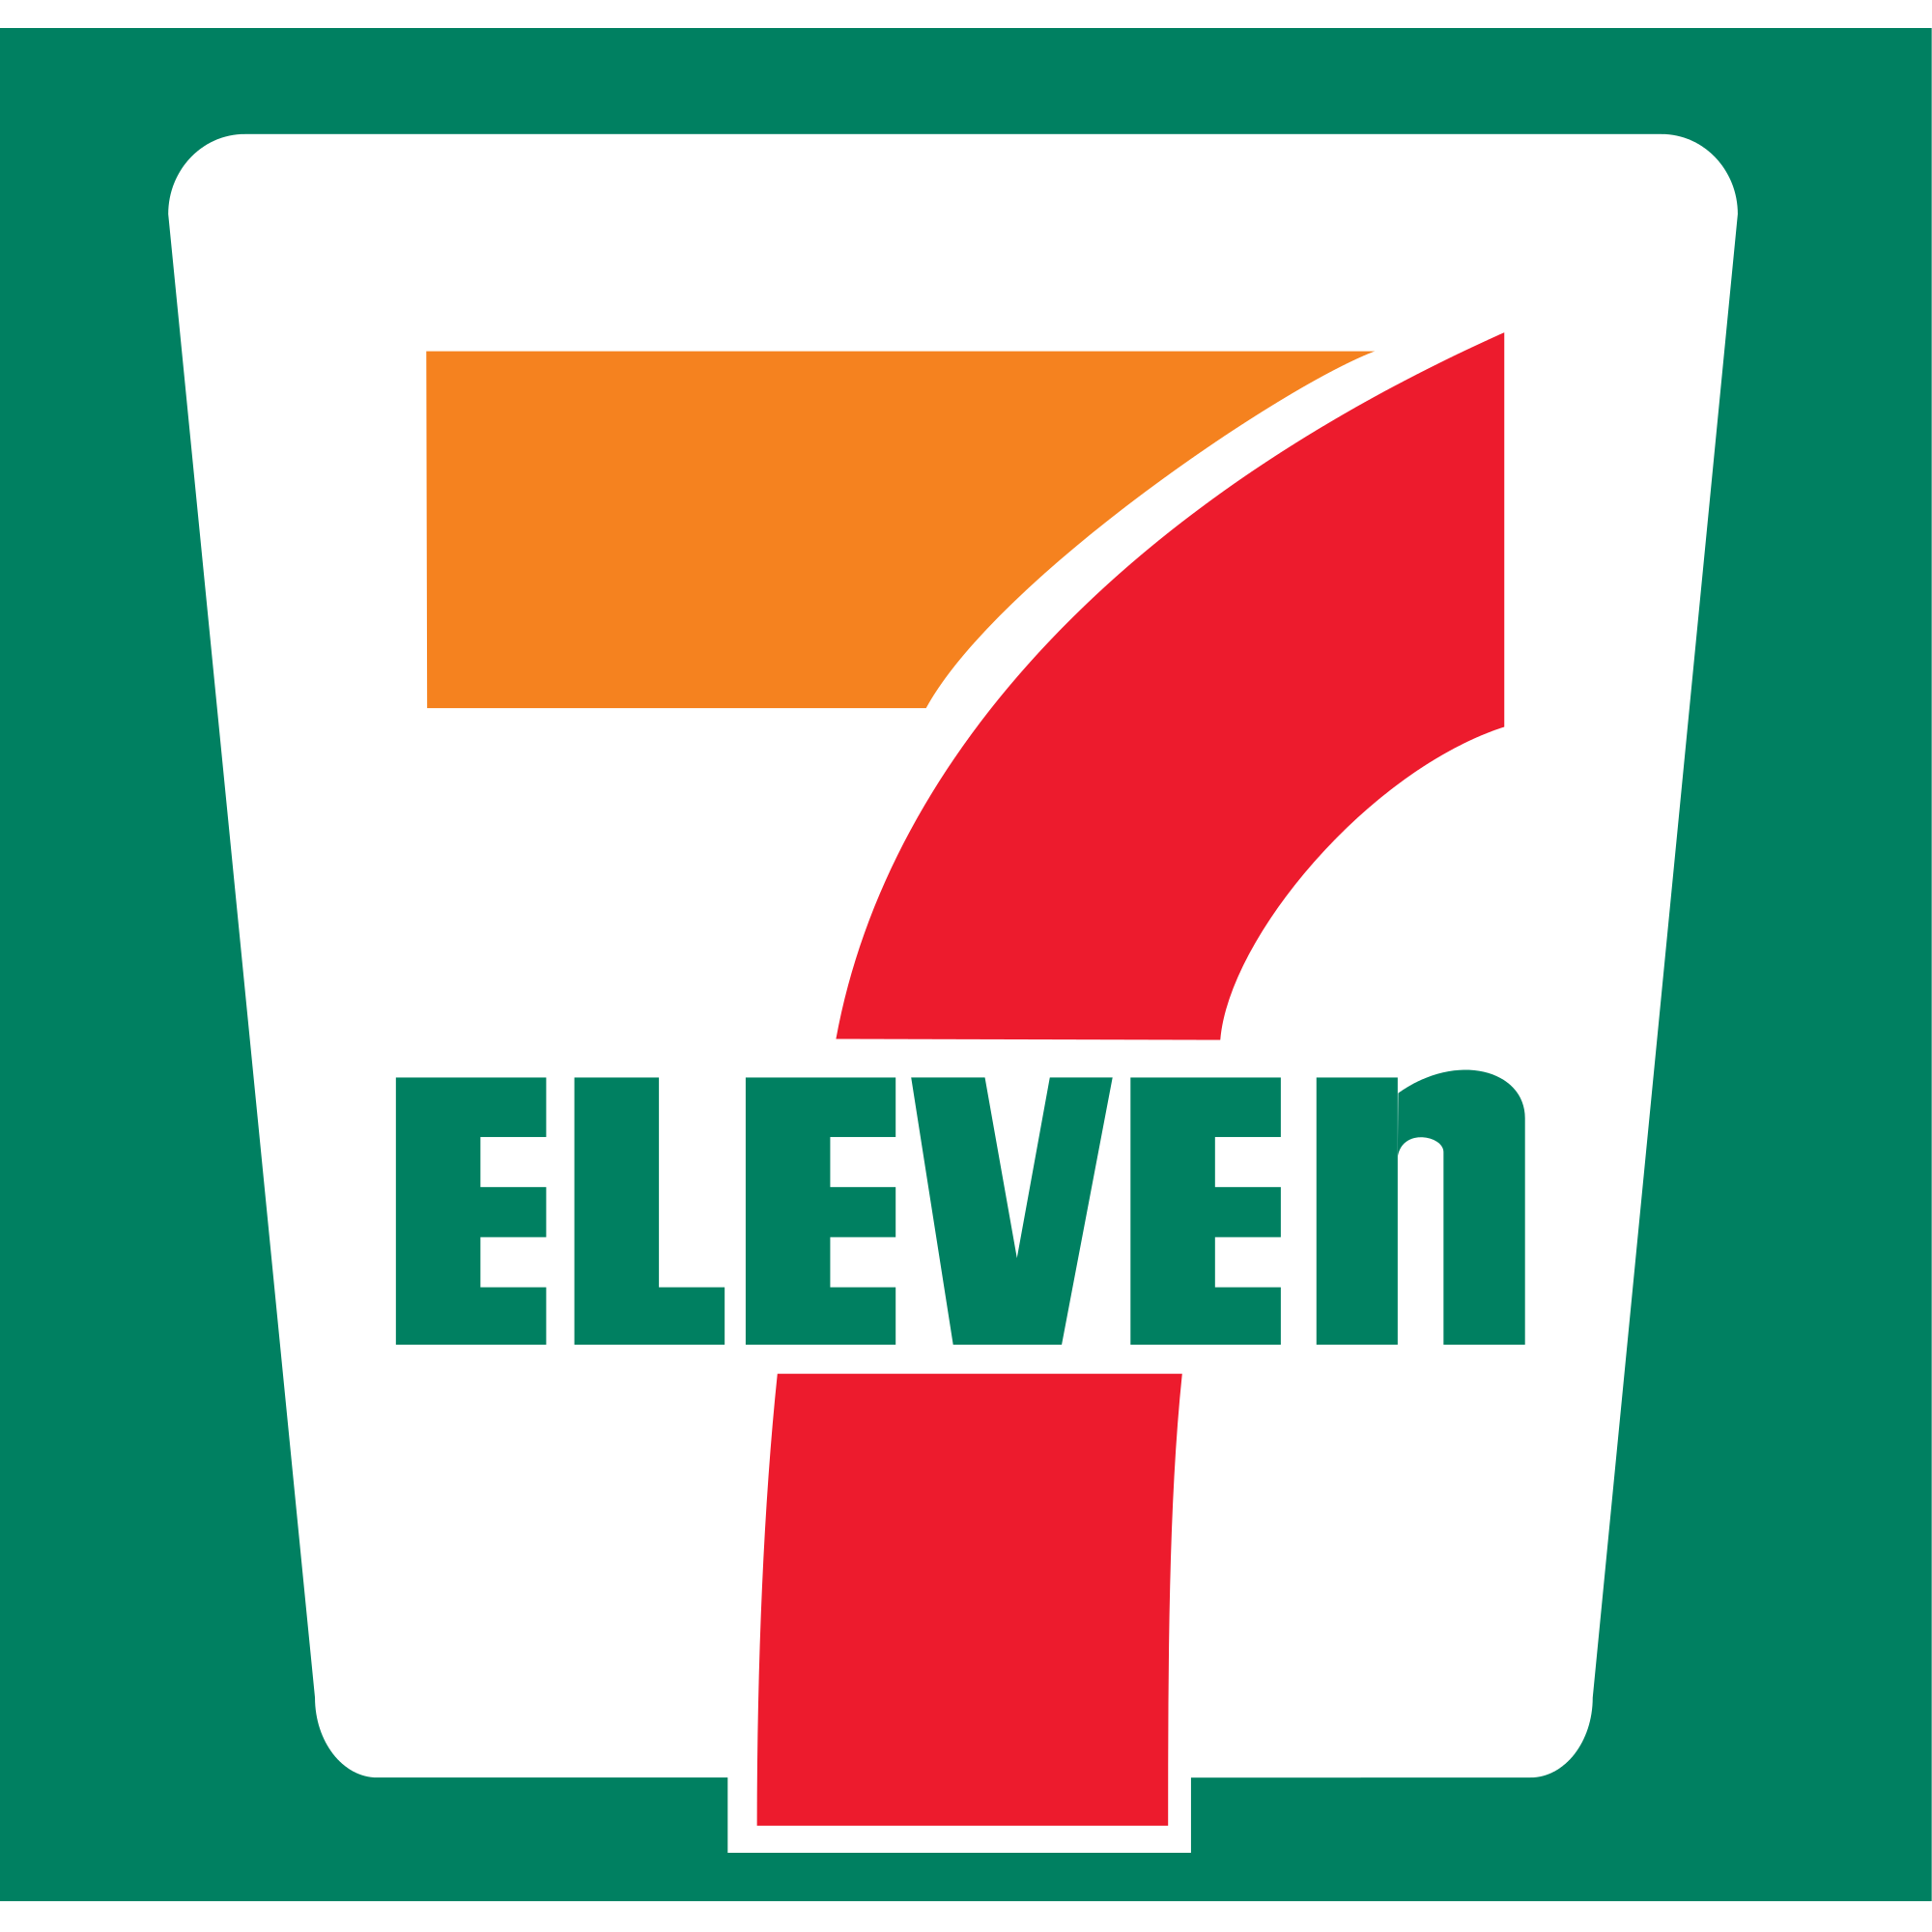 7-Eleven - Kissimmee, FL 34741 - (407)846-4475 | ShowMeLocal.com